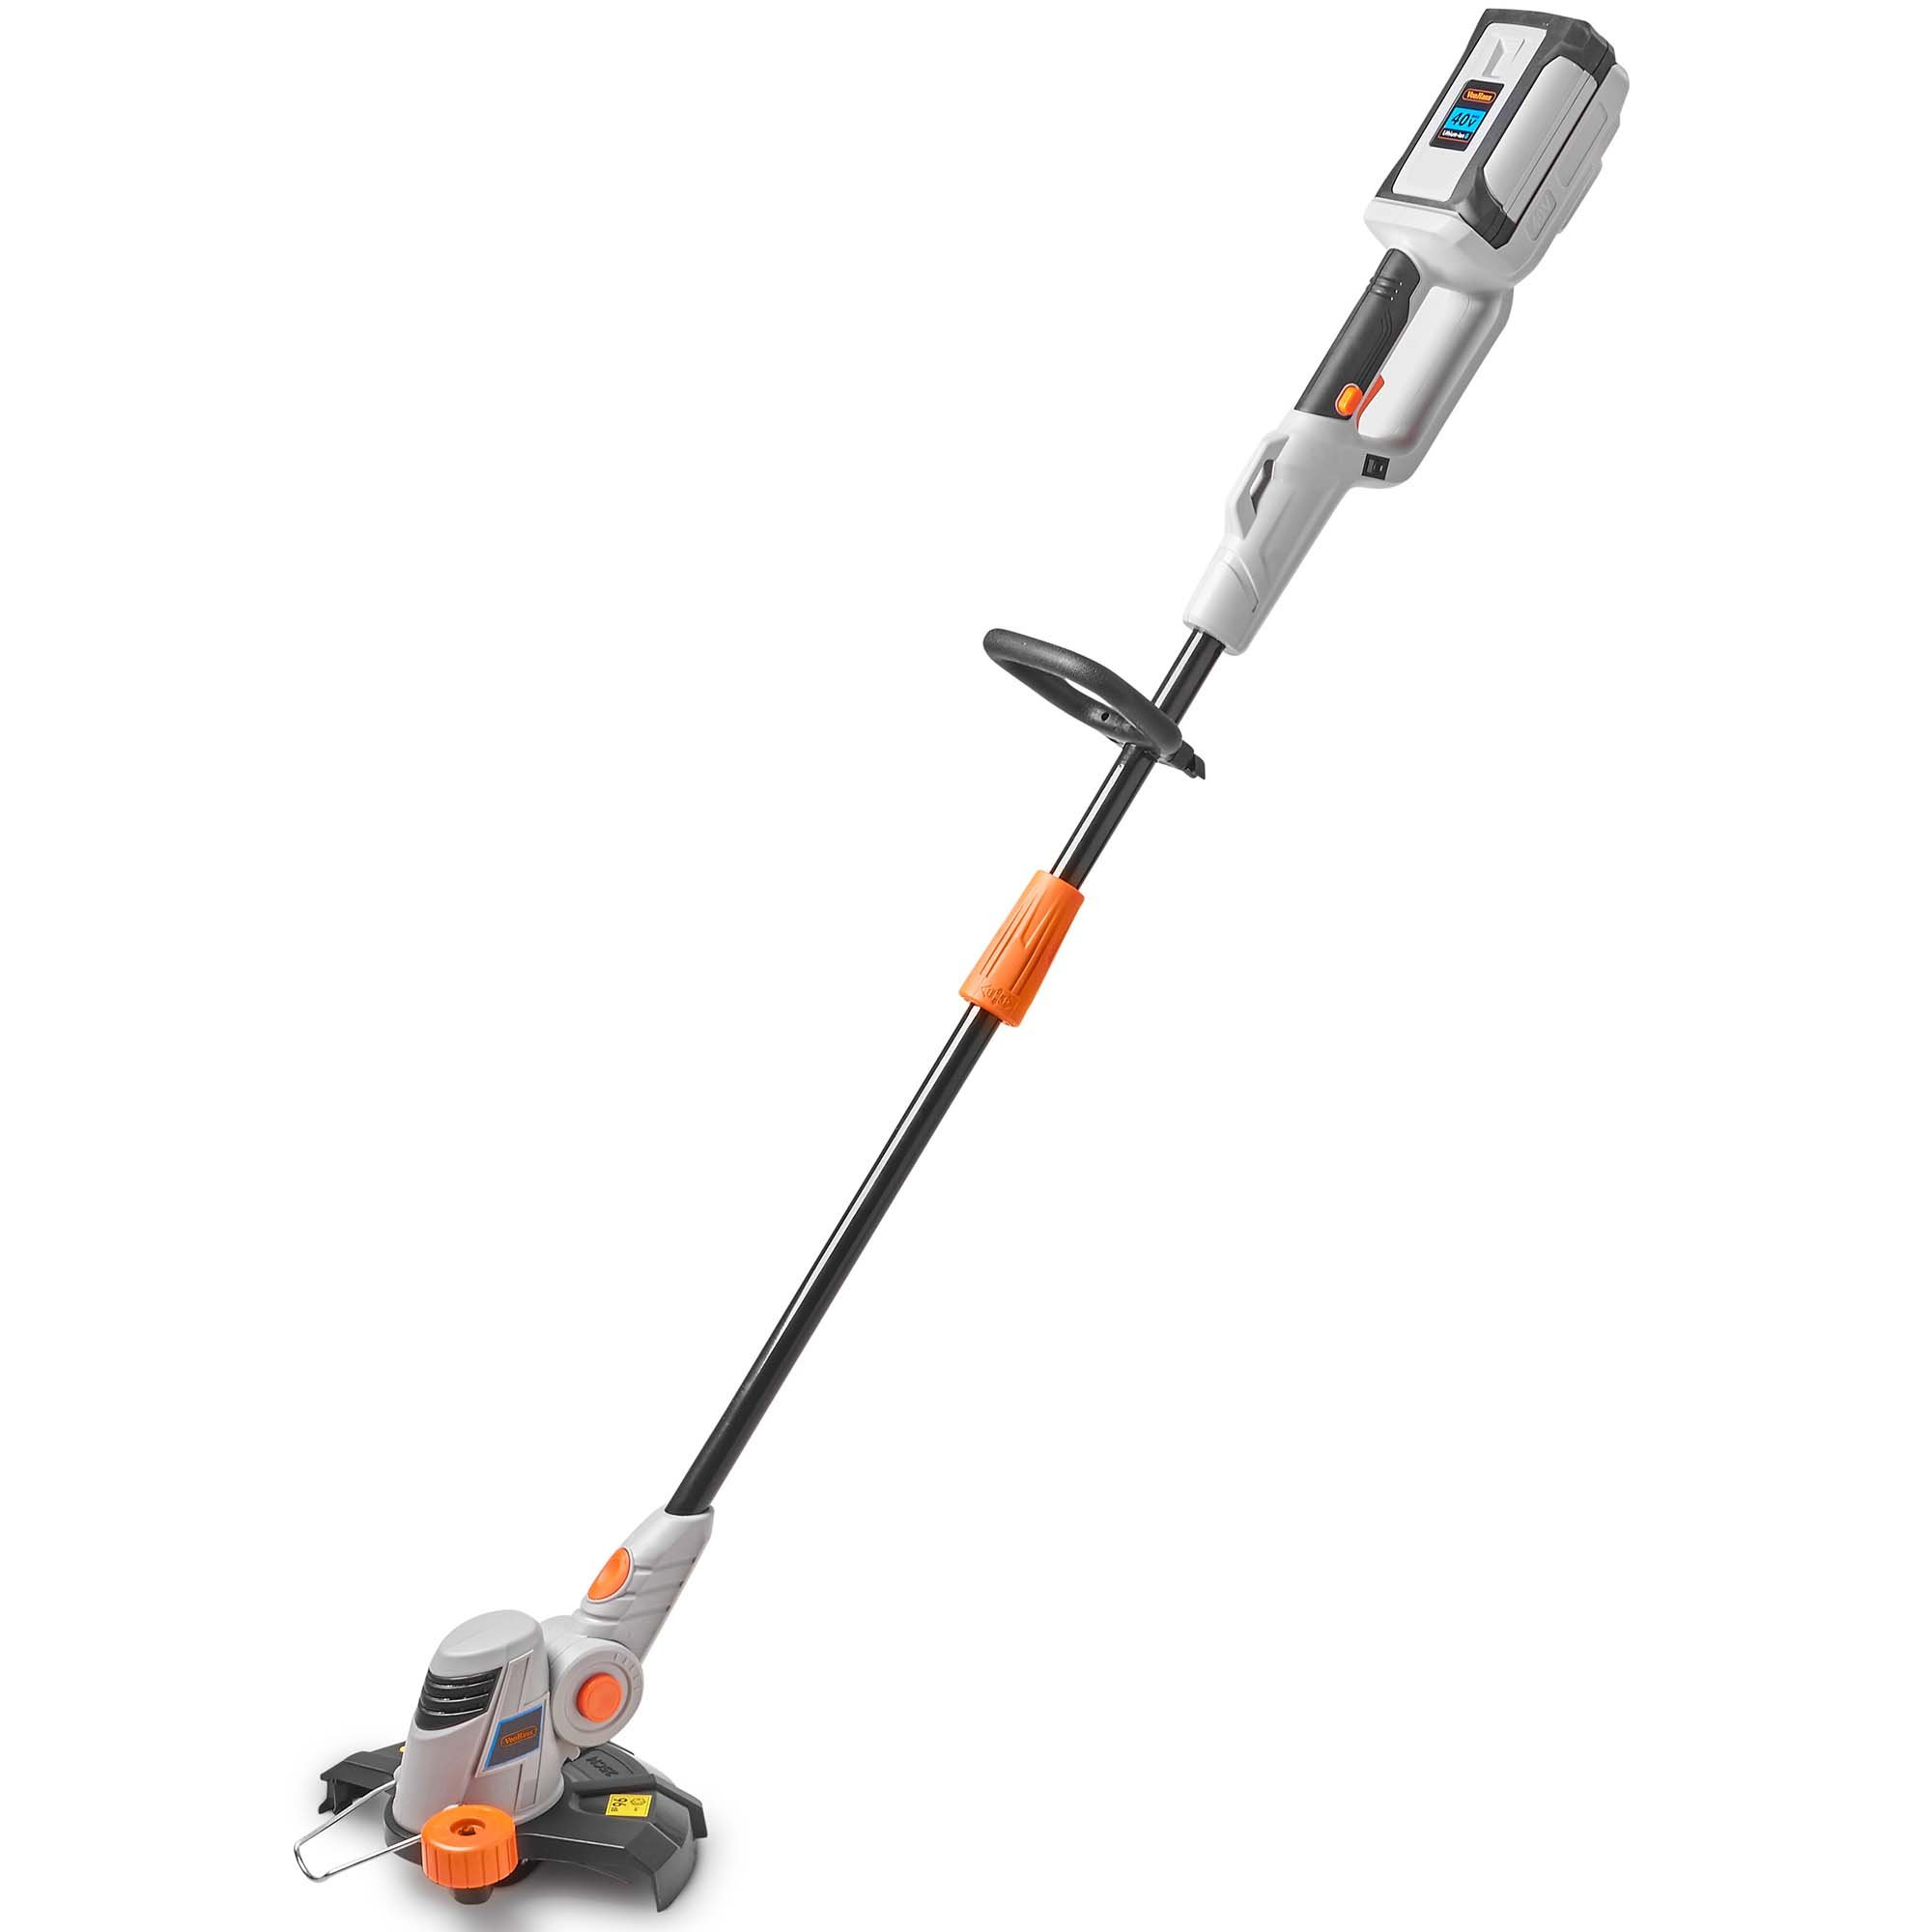 VonHaus 40V Max Cordless 9.8'' Grass String Trimmer/Edger with Angle Adjustment and Head Rotation - Includes 2.0Ah Lithium-ion Battery and Charger